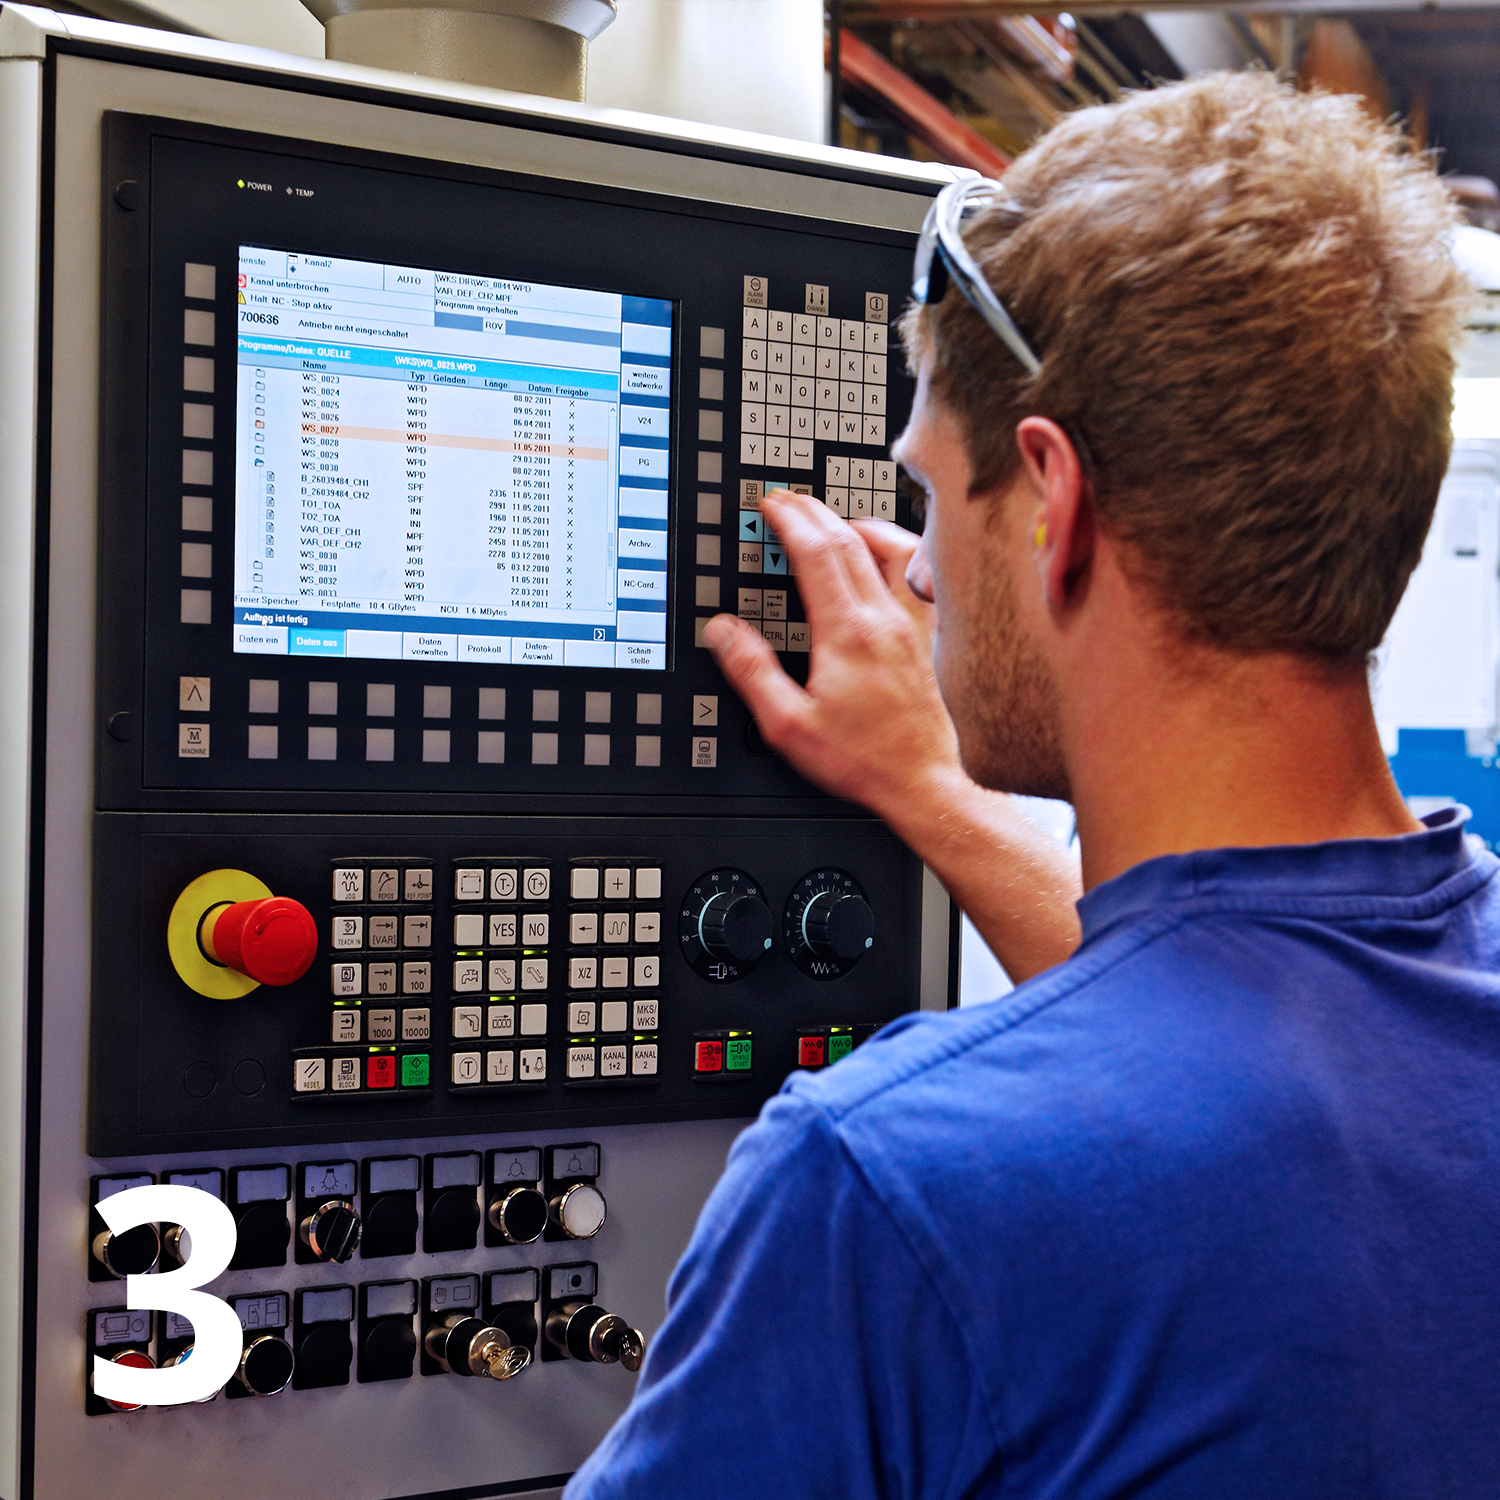 3. After Sales Service - We stand behind our products by offering our clients outstanding after sales service. Our factory-trained packaging equipment system technicians are fully qualified to maintain, service and source parts for all major brands of packaging equipment solutions.Preventative MaintenanceEmergency Repair ServiceReplacement Parts